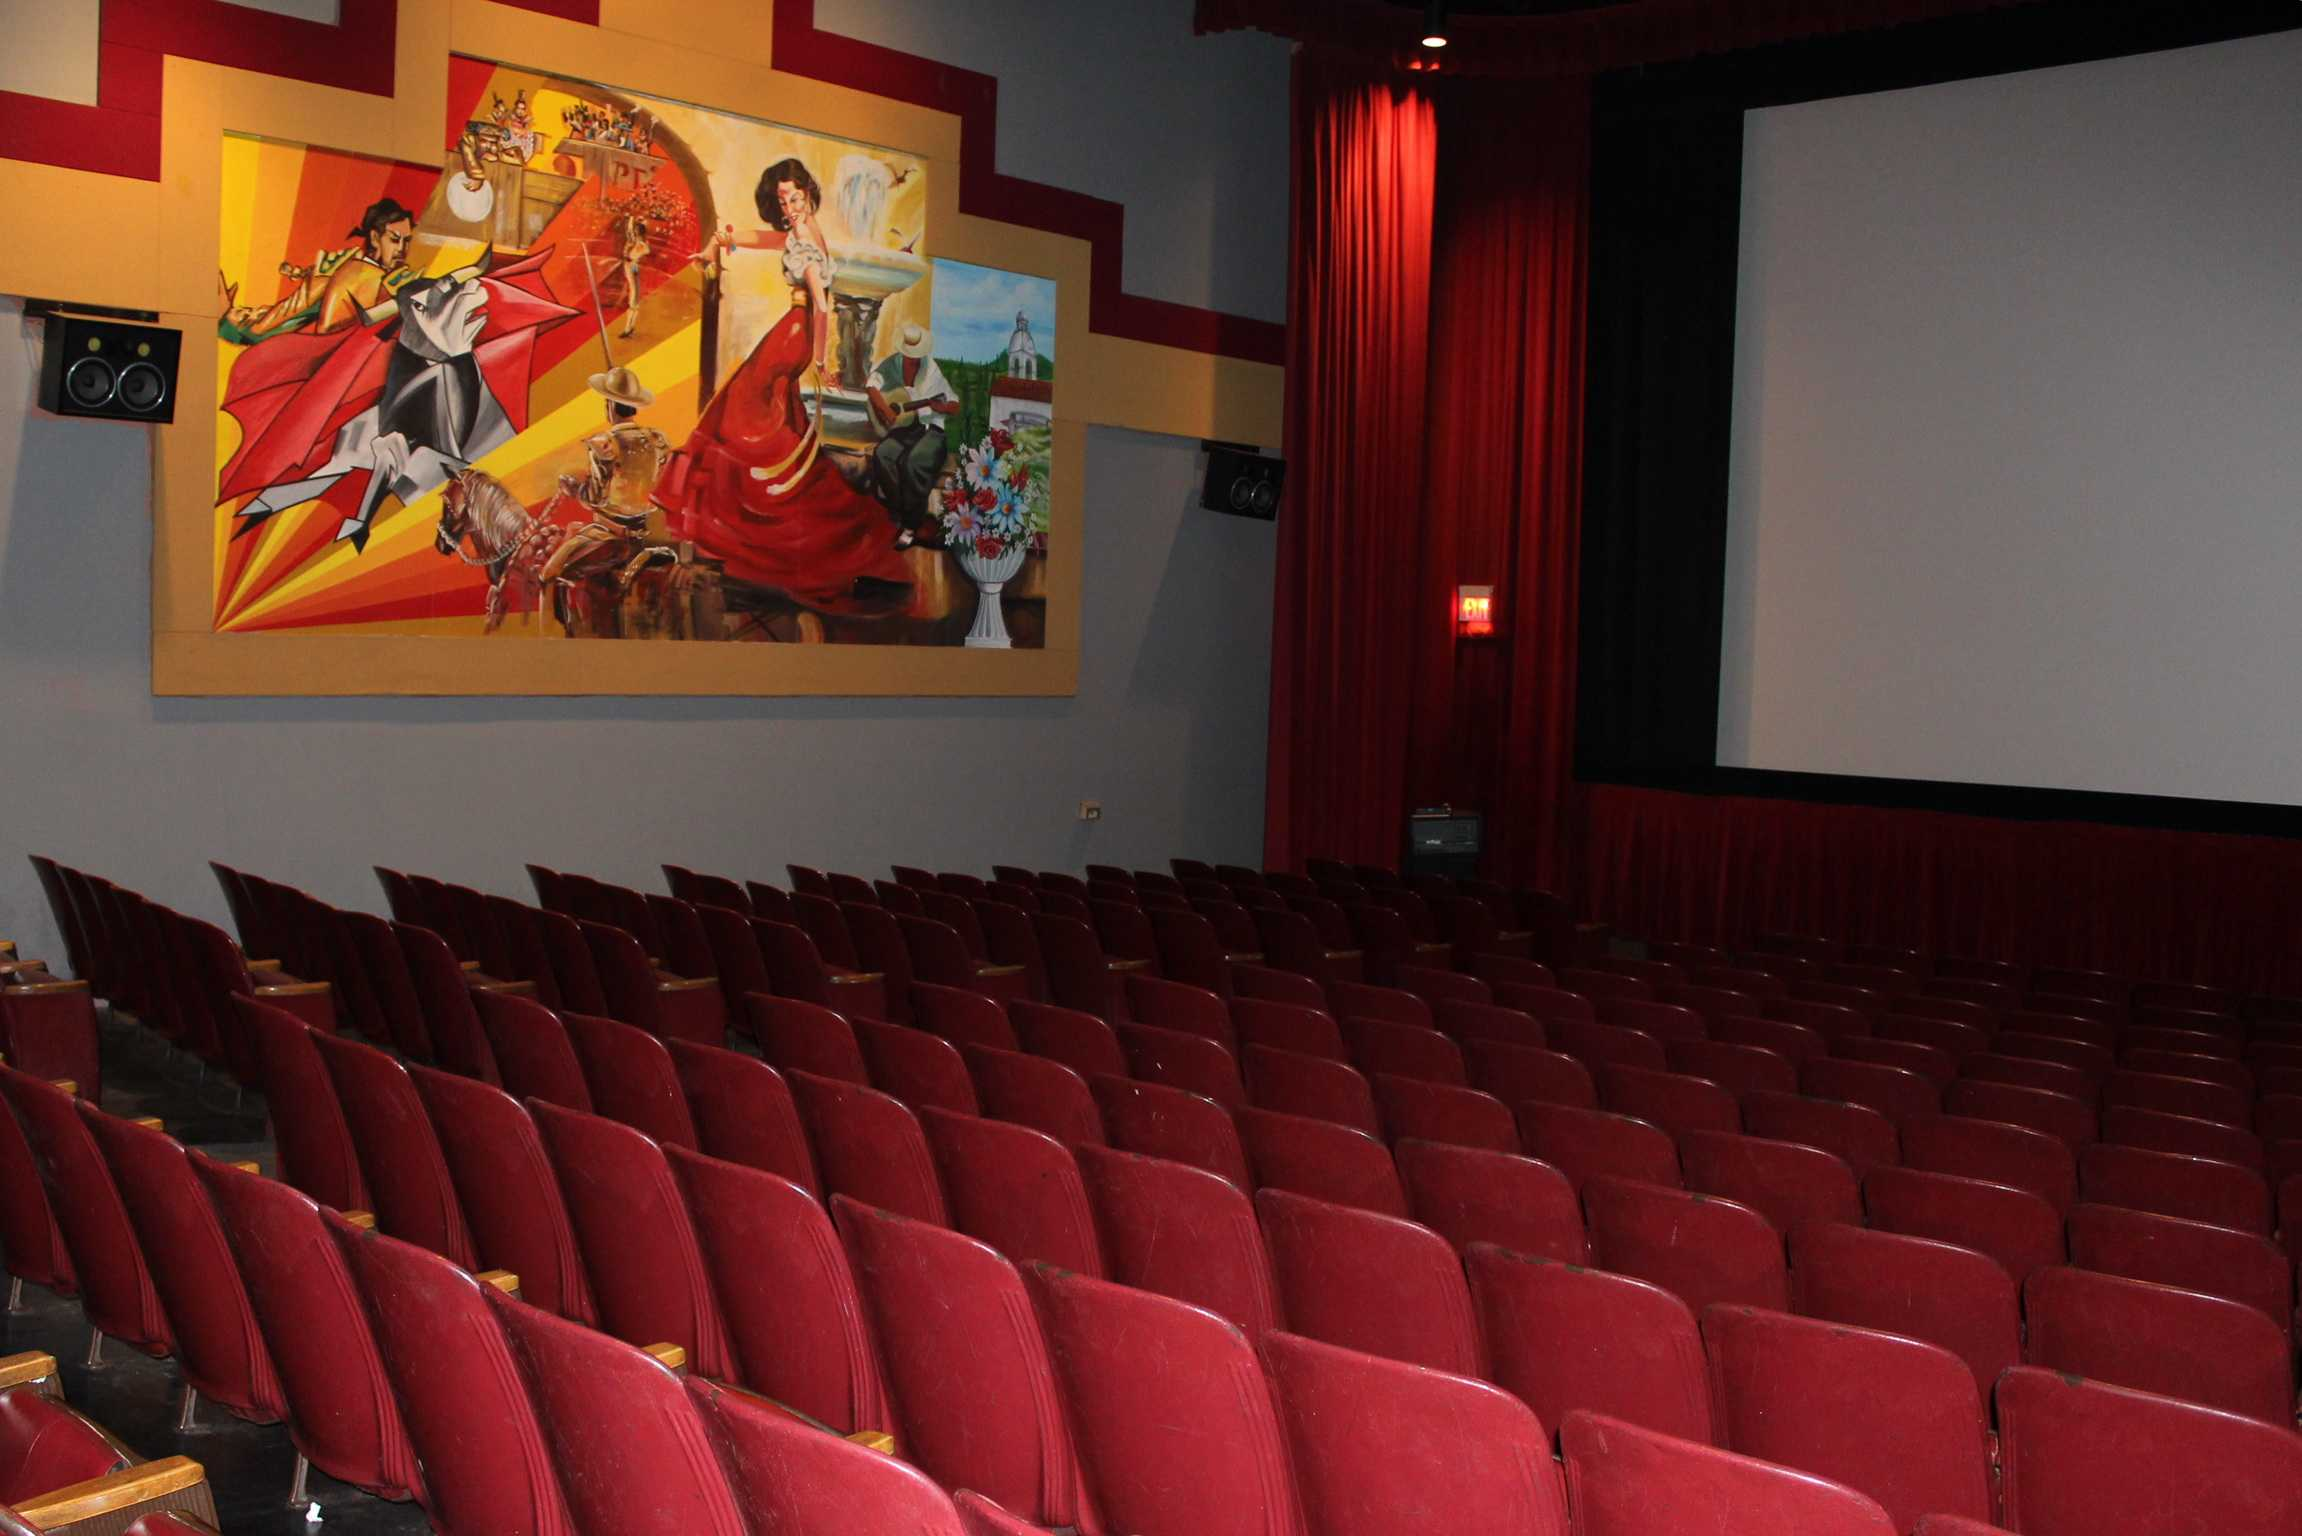 The+second+screening+room+is+also+used+for+special+events+such+as%2C+student+film+screenings%2C+festivities+and+charitable+events.